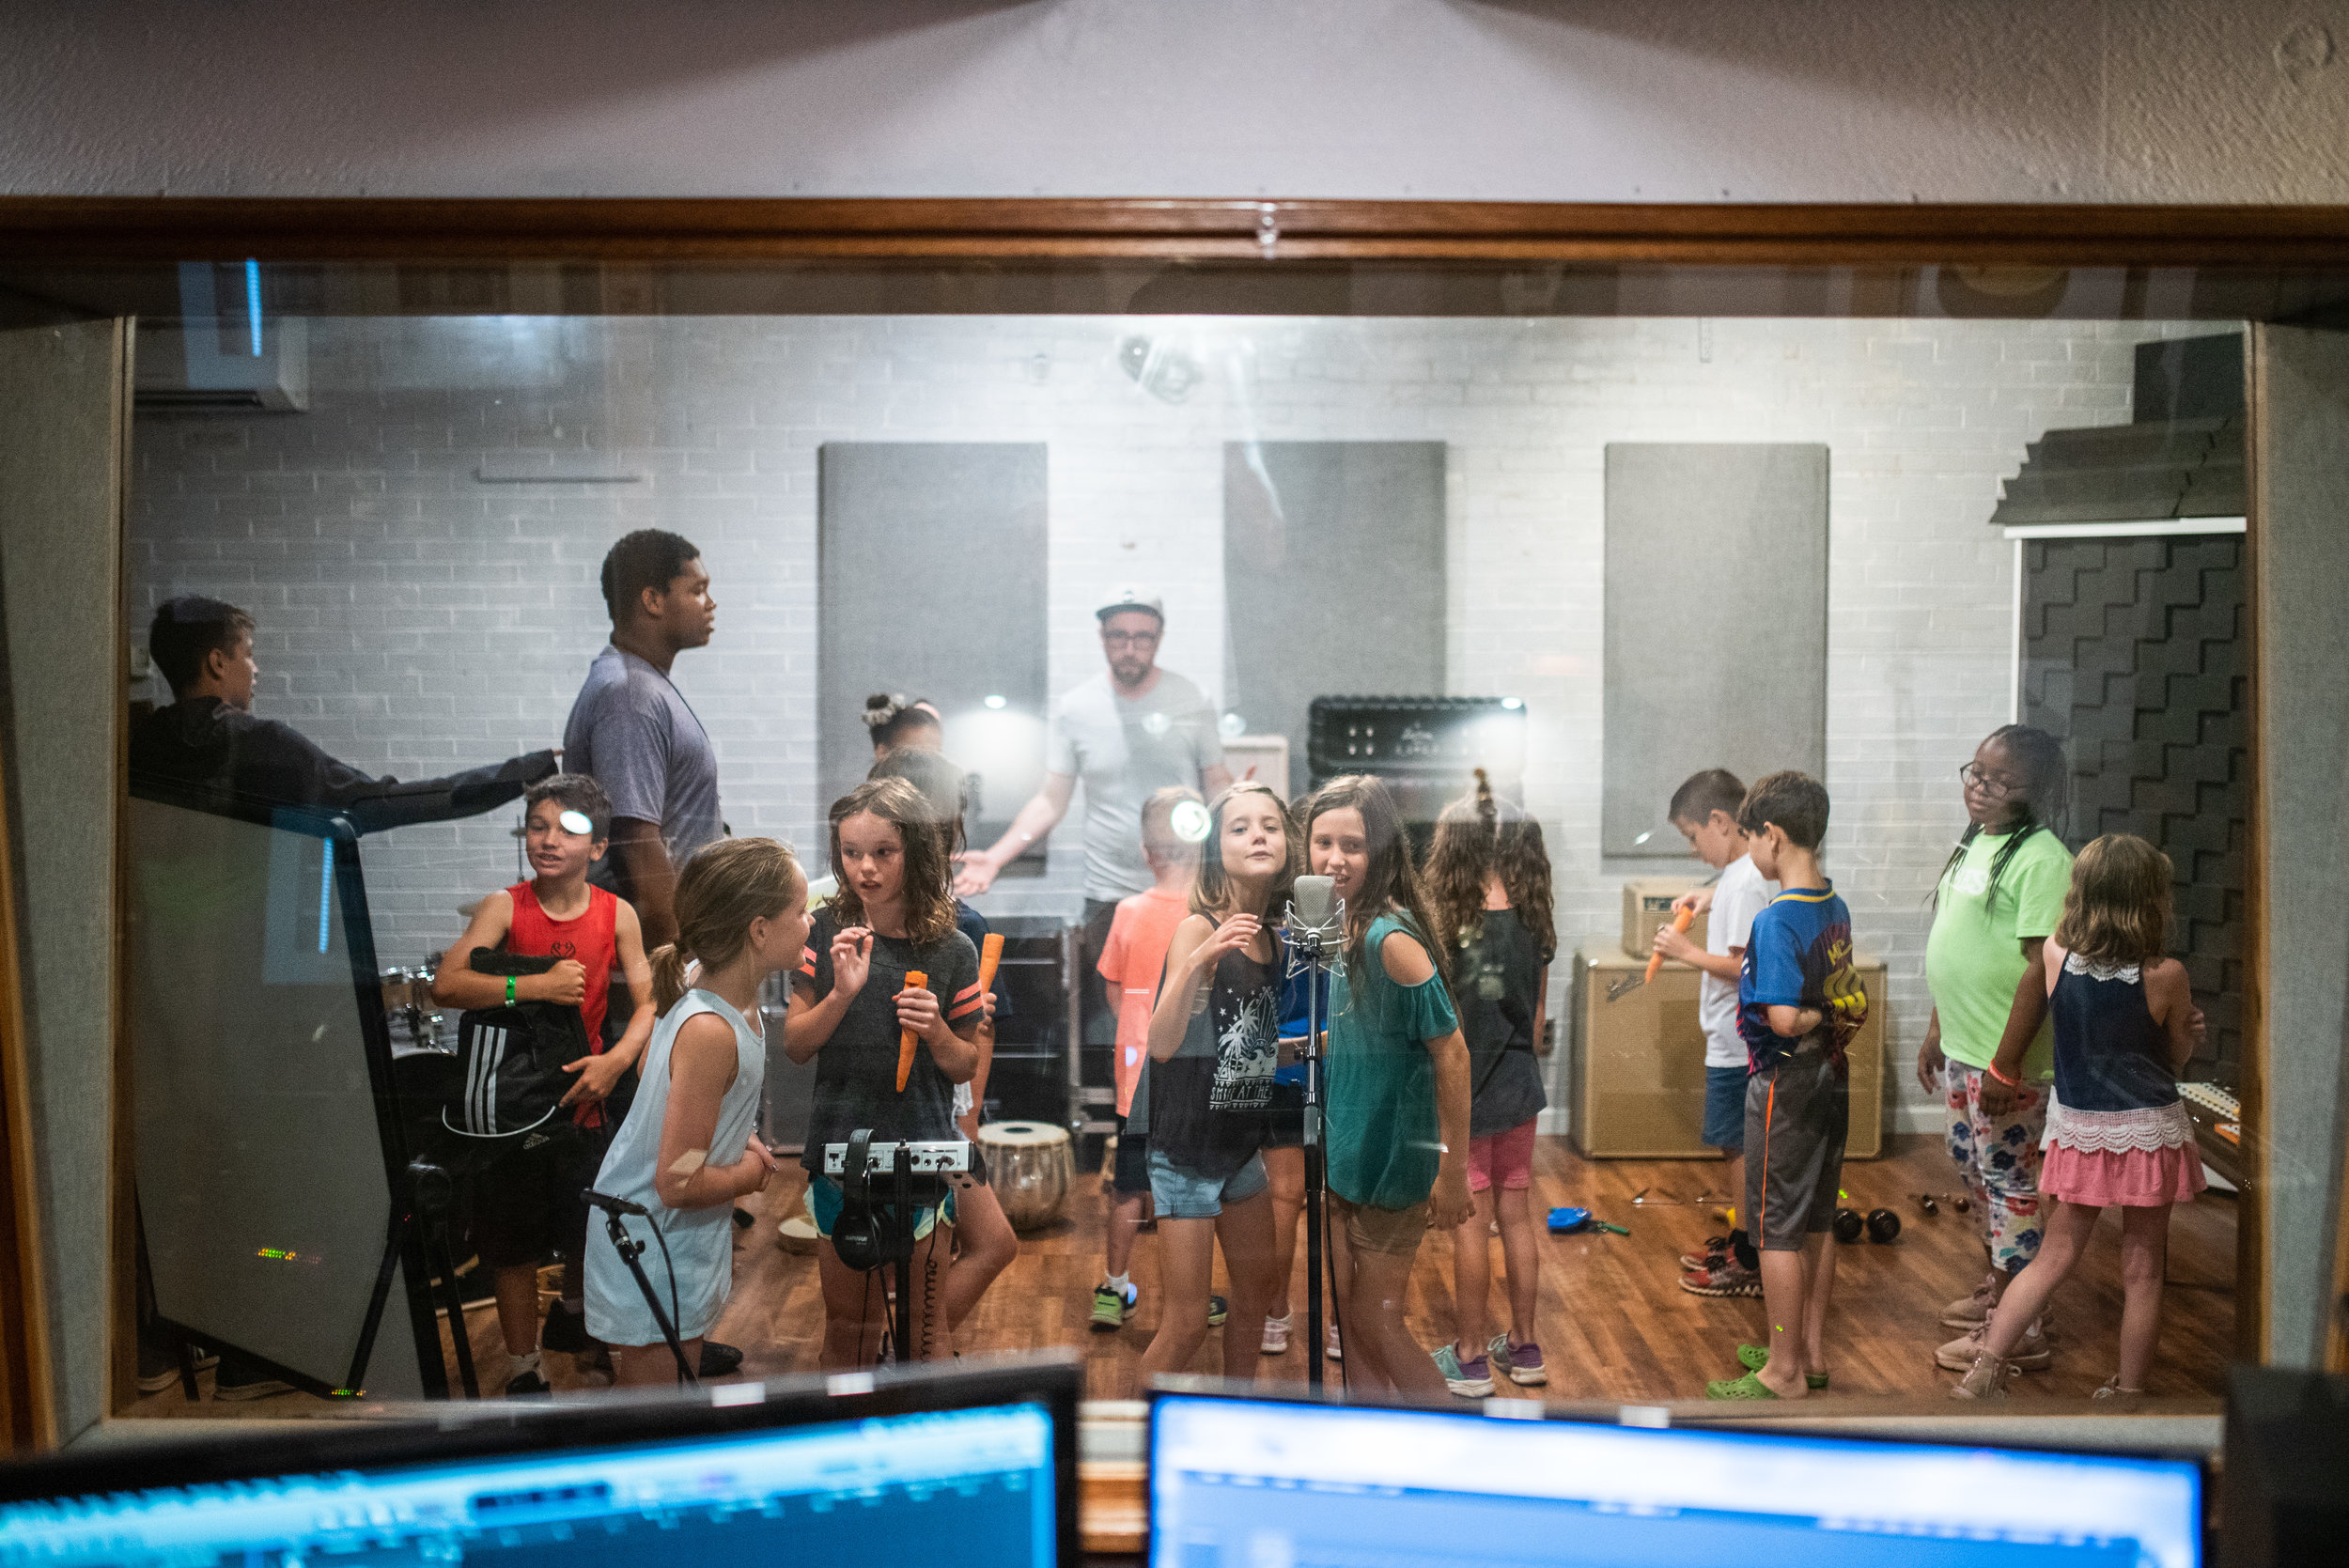 Students worked together to record a group song with Audio Engineer Shane Drause at Center Street Recording Studios. This activity revealed the important part that each camper played in producing a song.